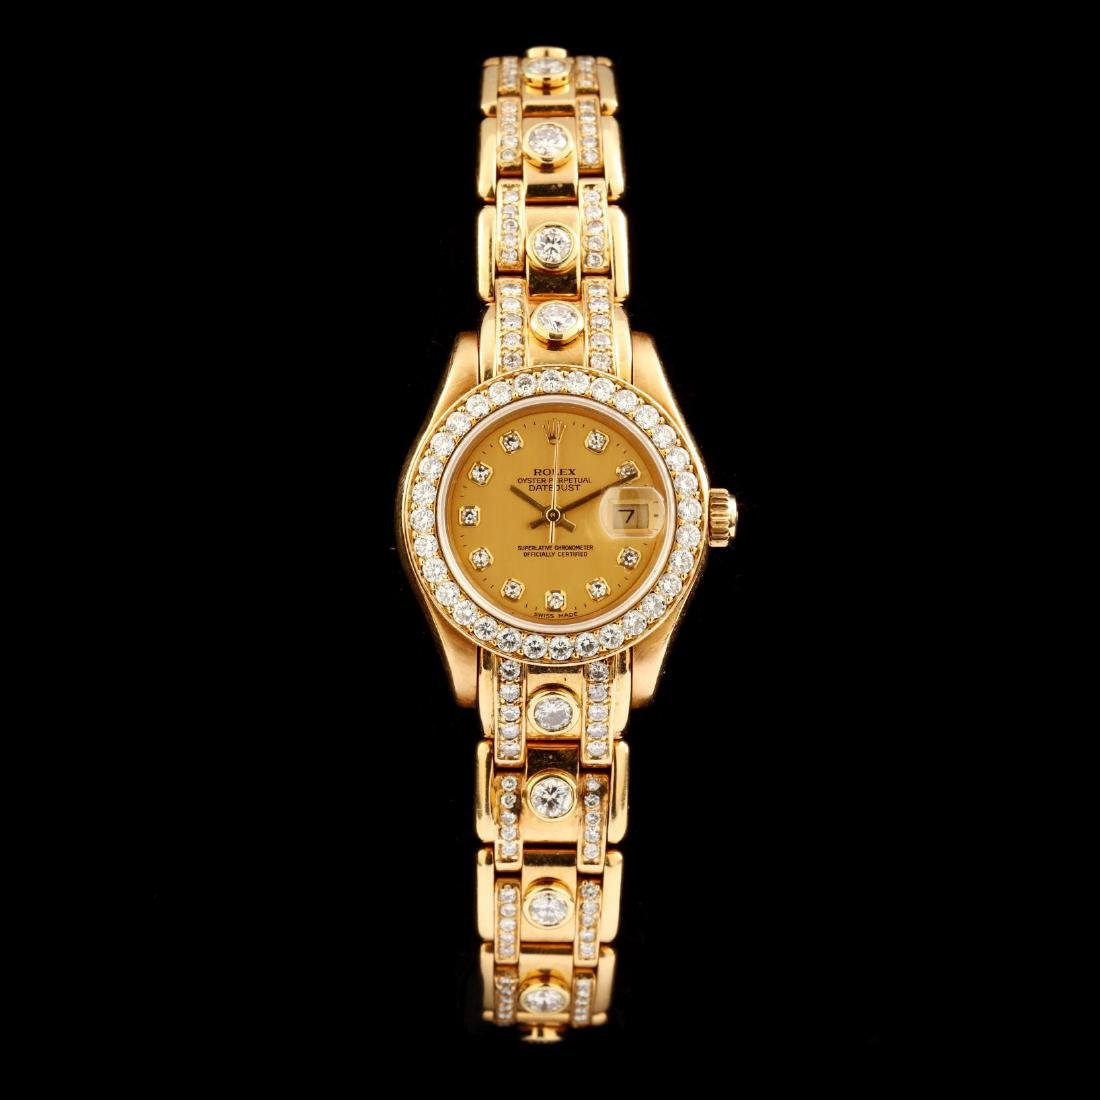 """Lady's 18KT Gold and Diamond """"Pearlmaster"""" Watch, Rolex"""